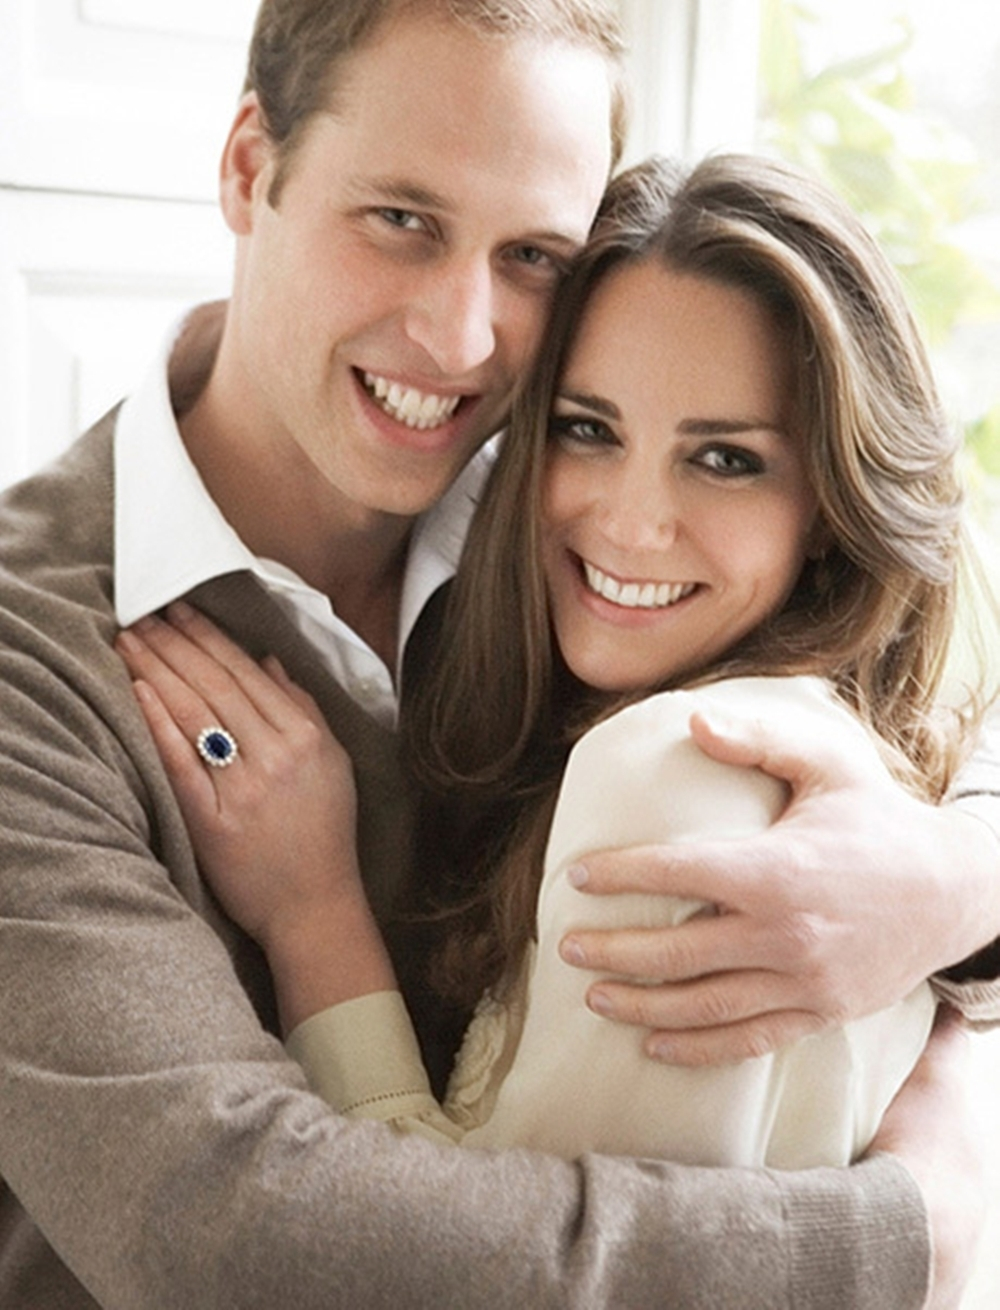 https://i1.wp.com/images4.fanpop.com/image/photos/18800000/William-Kate-prince-william-and-kate-middleton-18854456-1000-1310.jpg